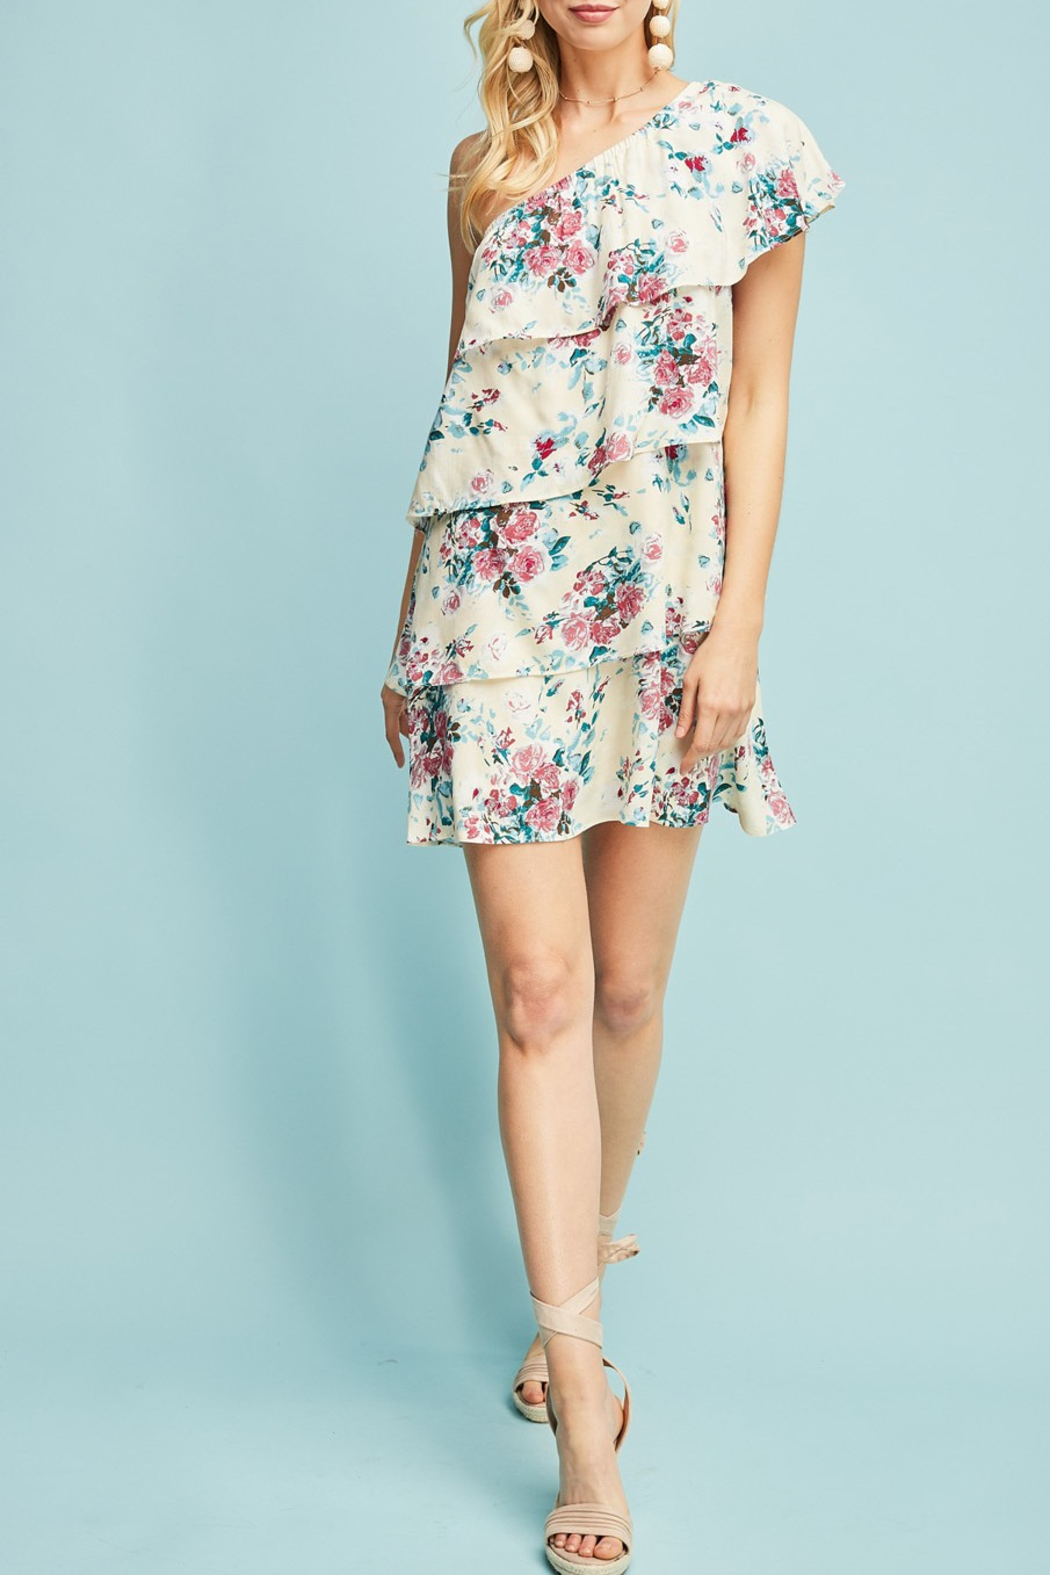 cd95d53802e0 Entro Flirty Summer dress from Mississippi by Exit 16 - Diamondhead ...